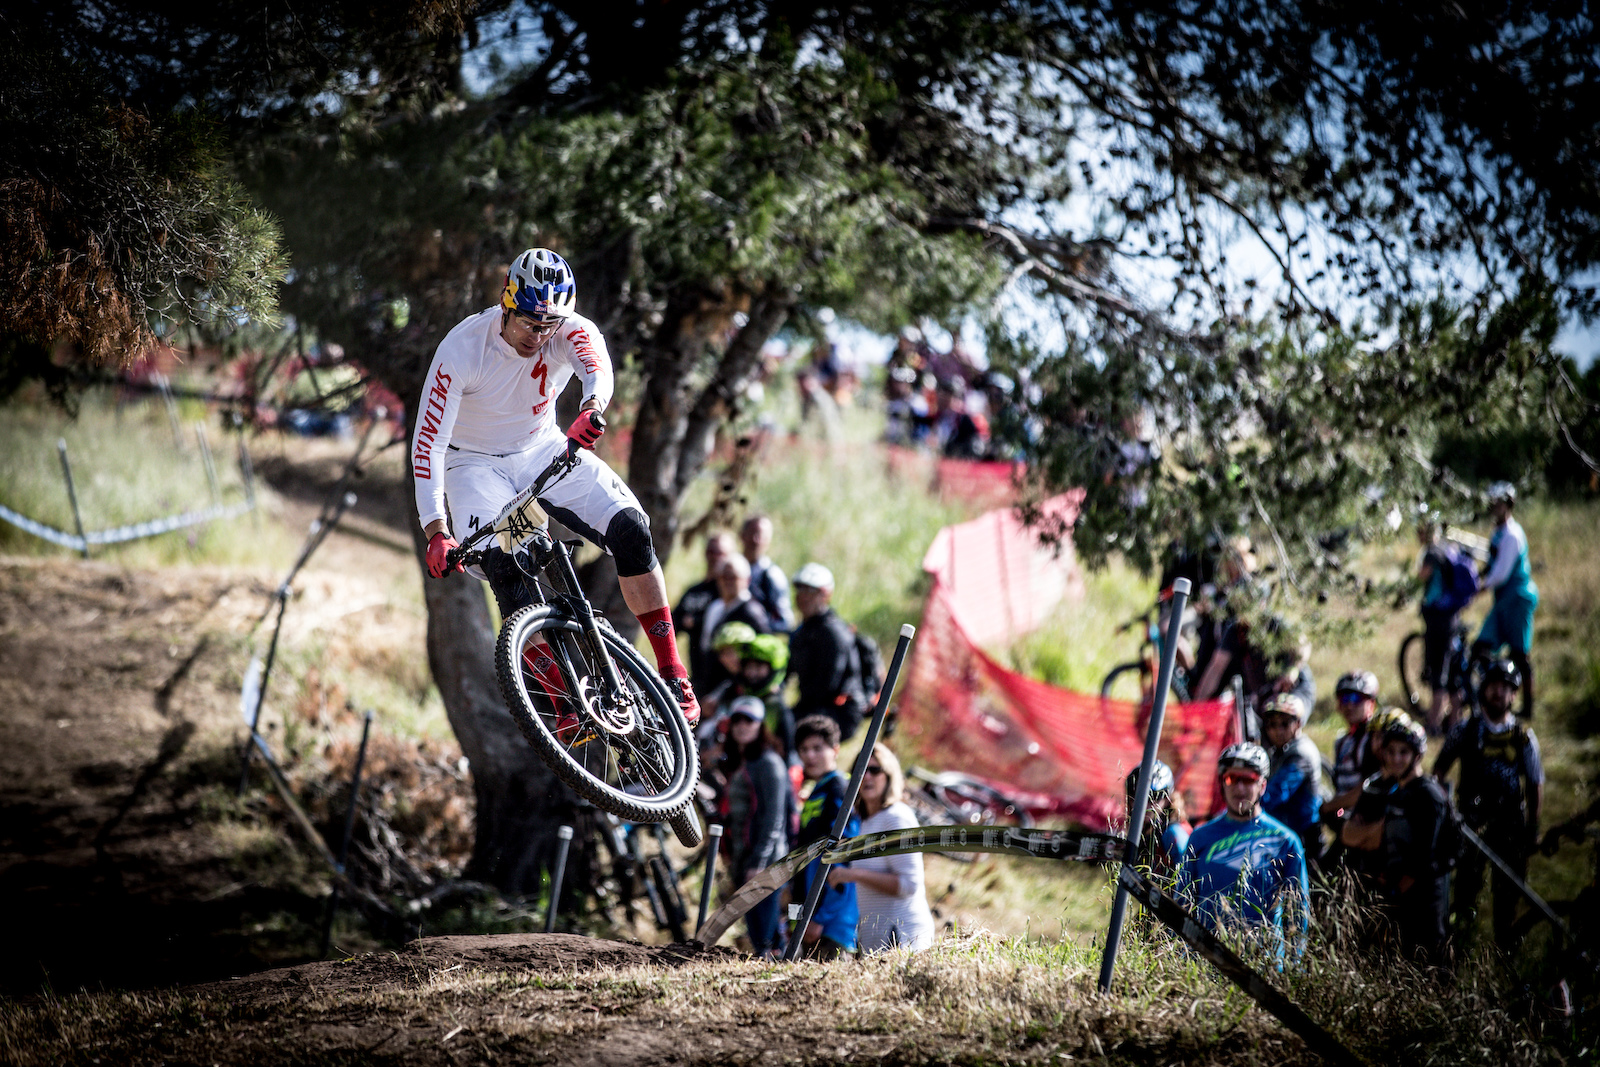 Curtis Keene Scrubbin the Double with style on stage 1